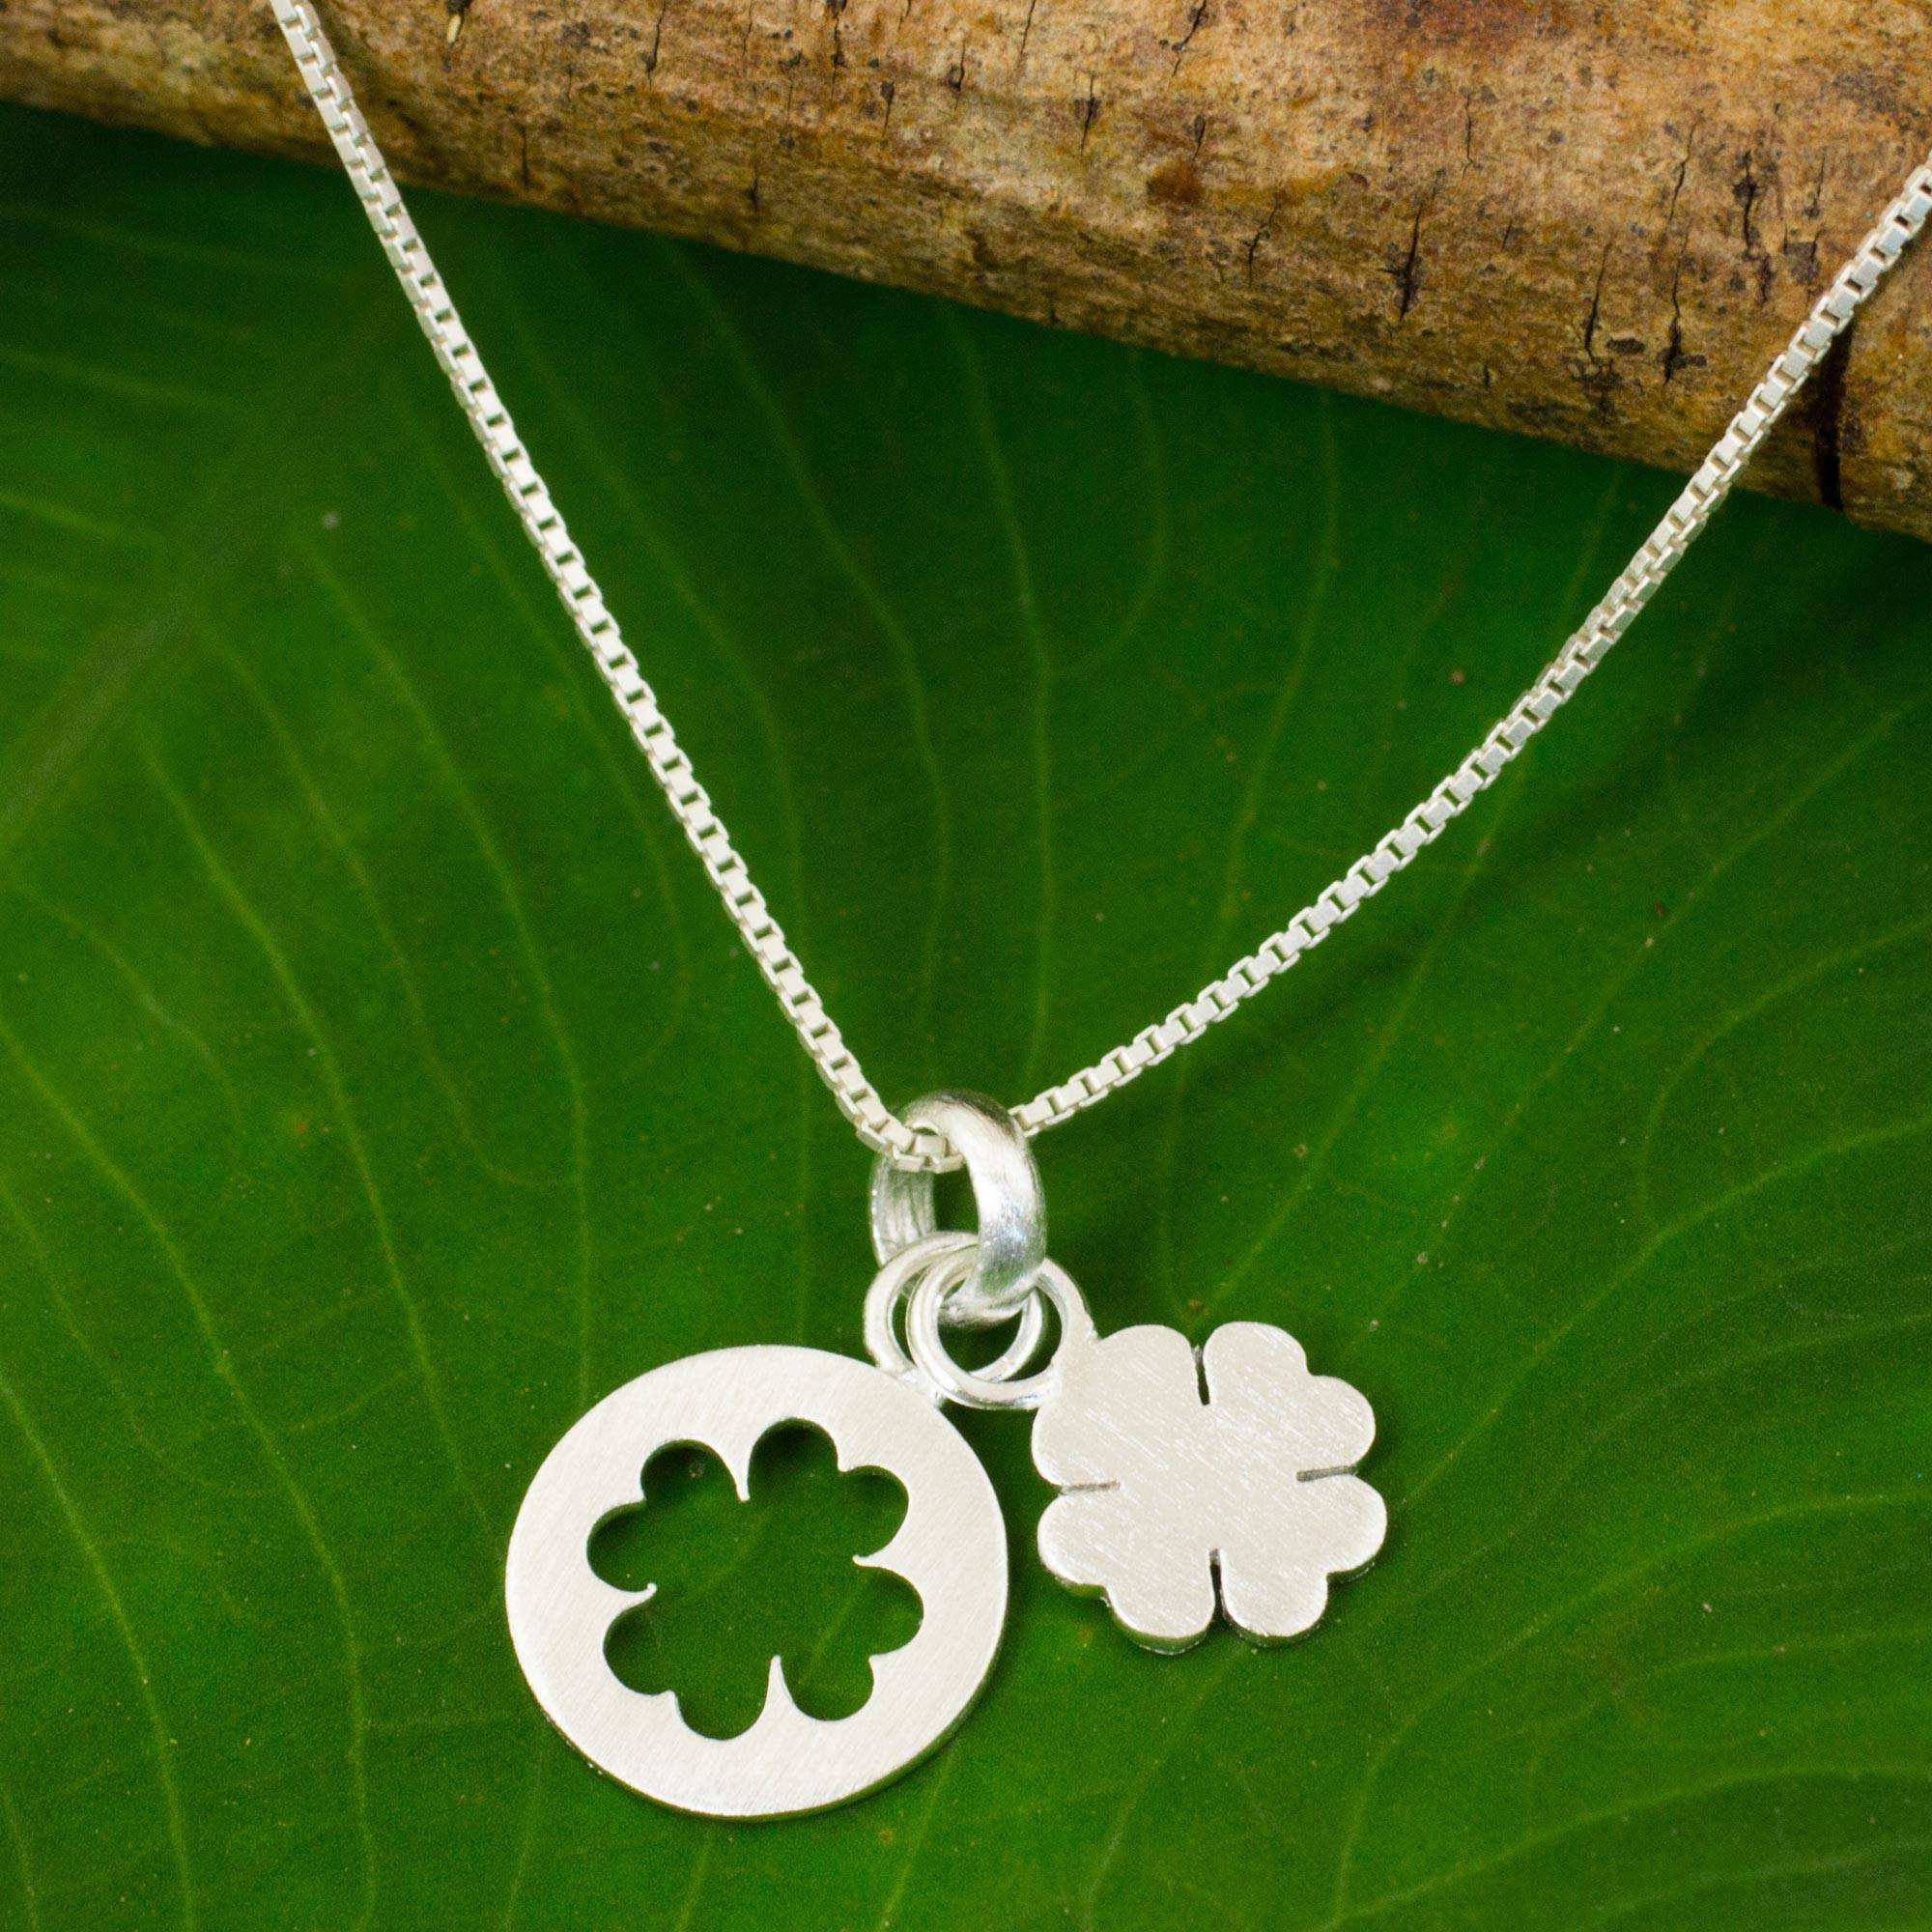 Sterling silver pendant necklace 'Four Leaf Clover' Celebrate St. Patrick's Day